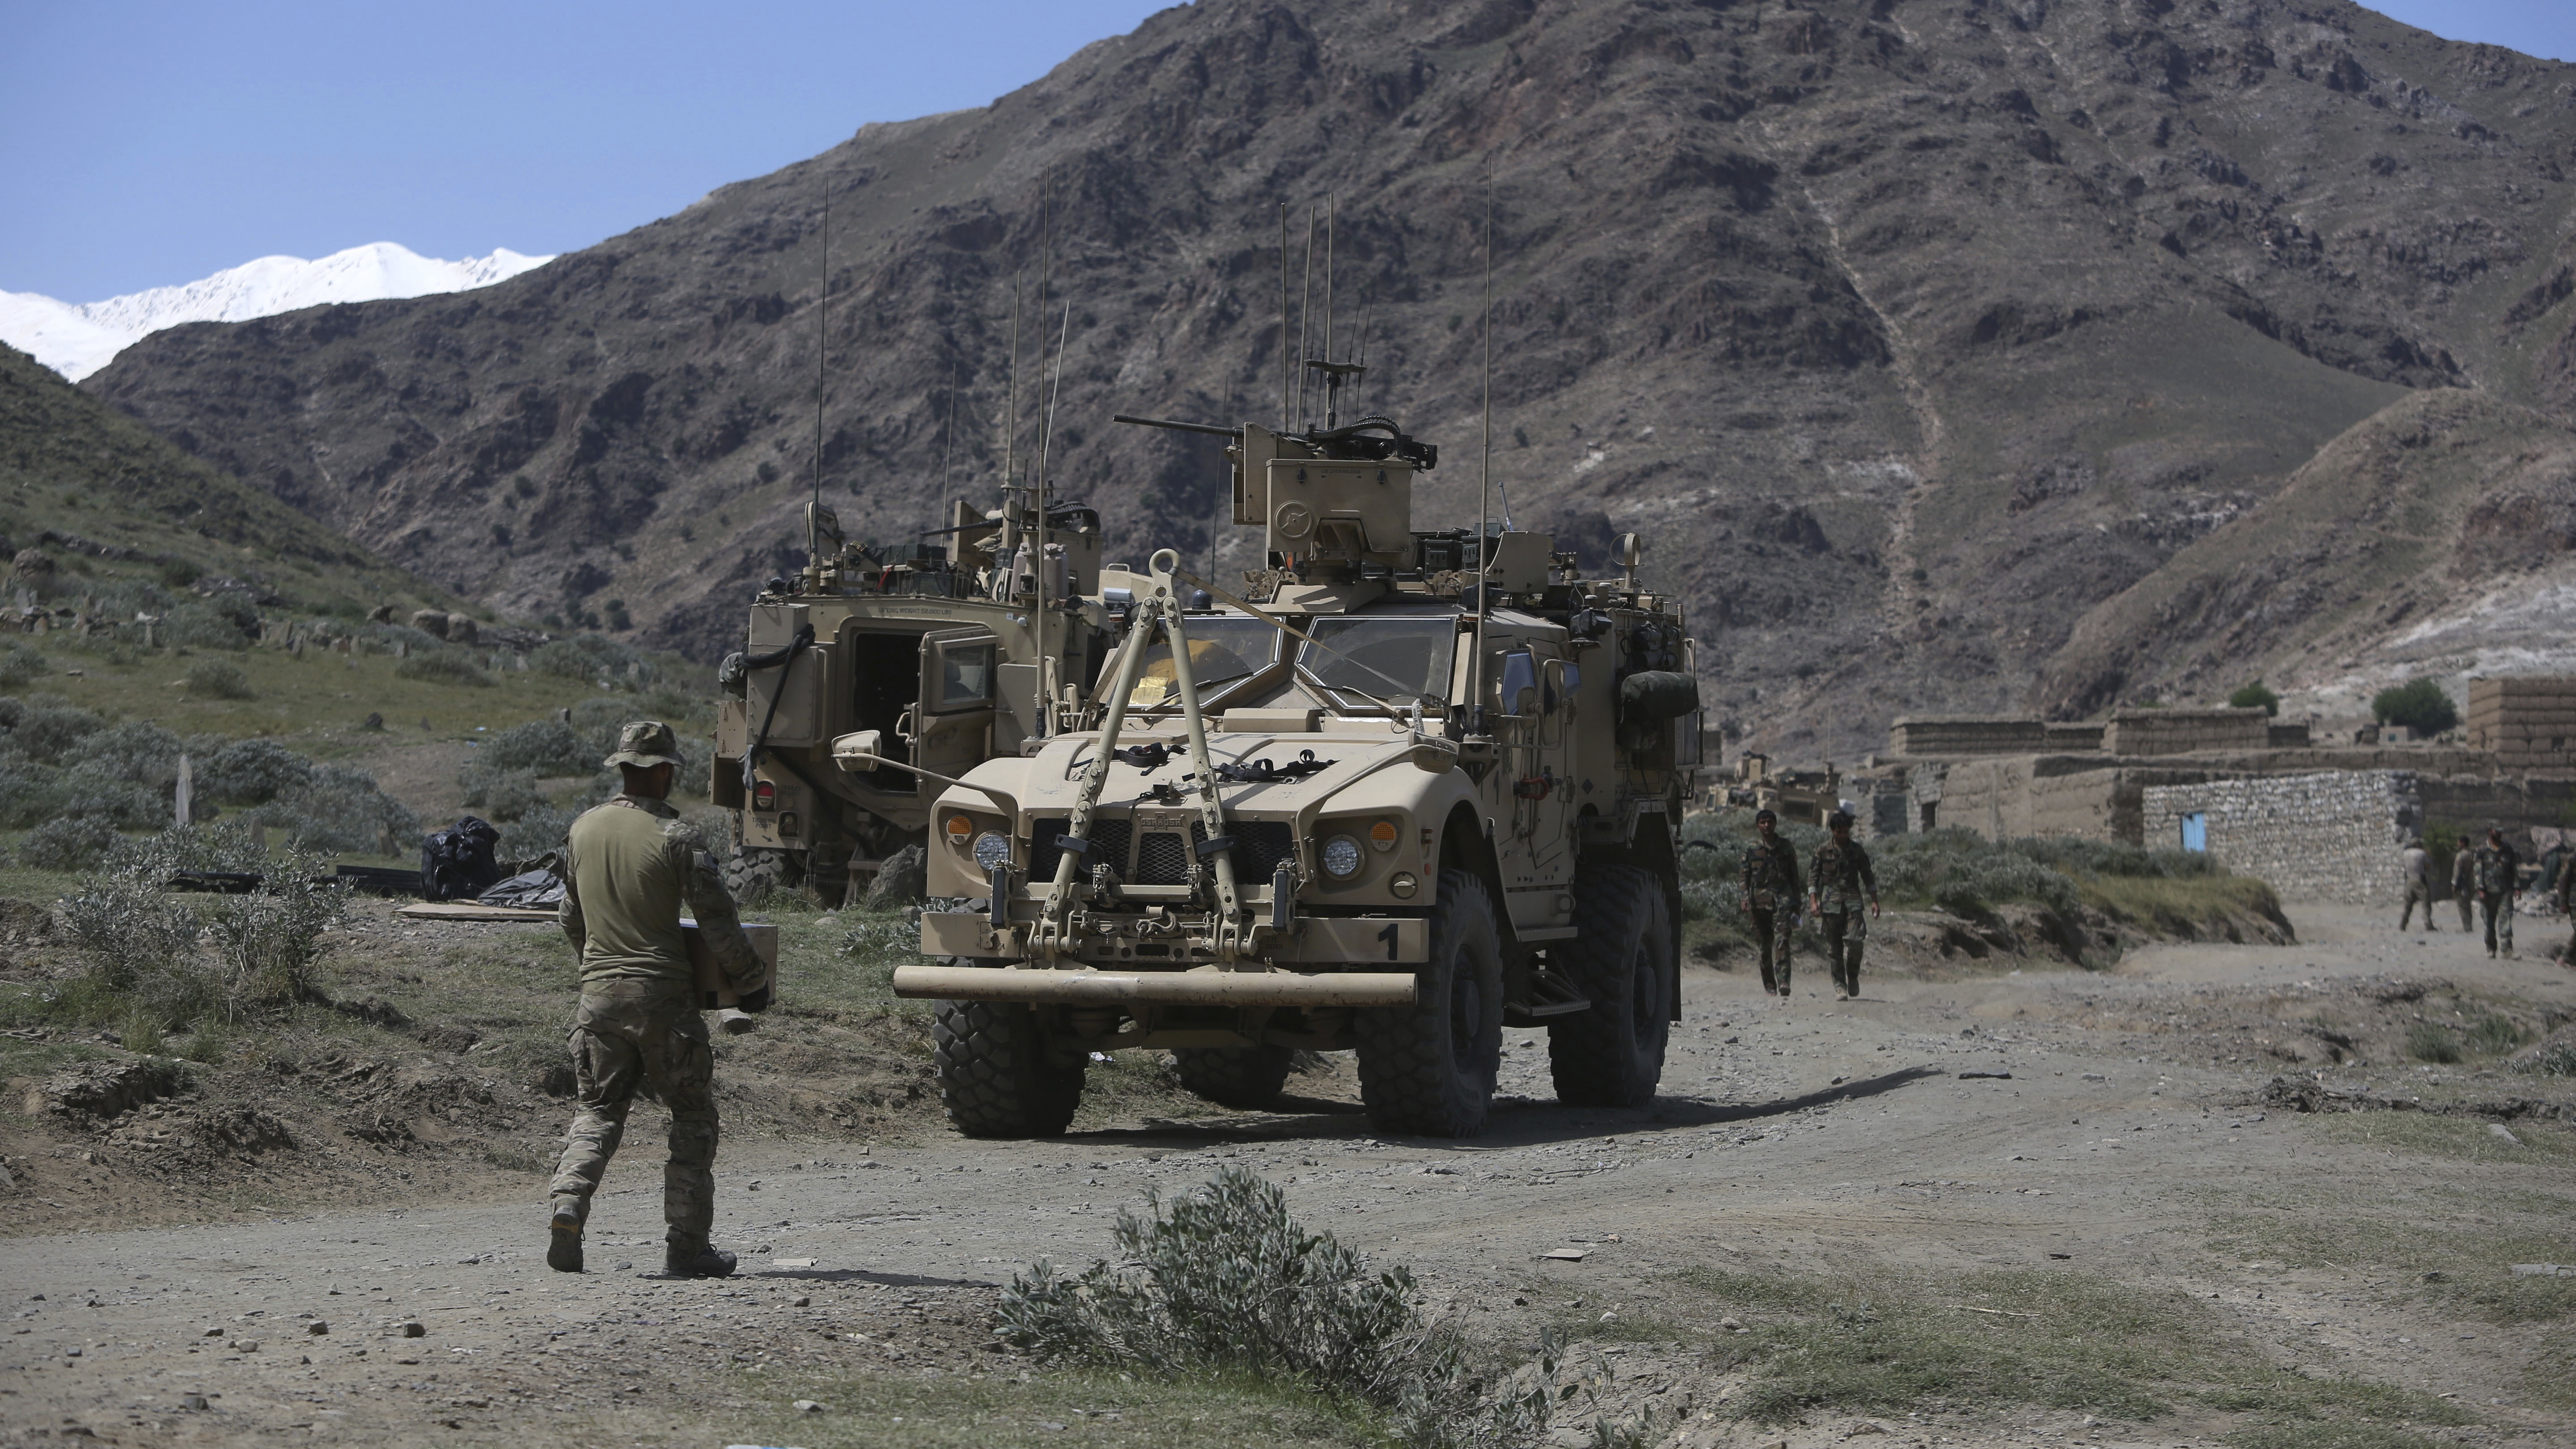 Roundtable: The Truth About The Afghanistan War